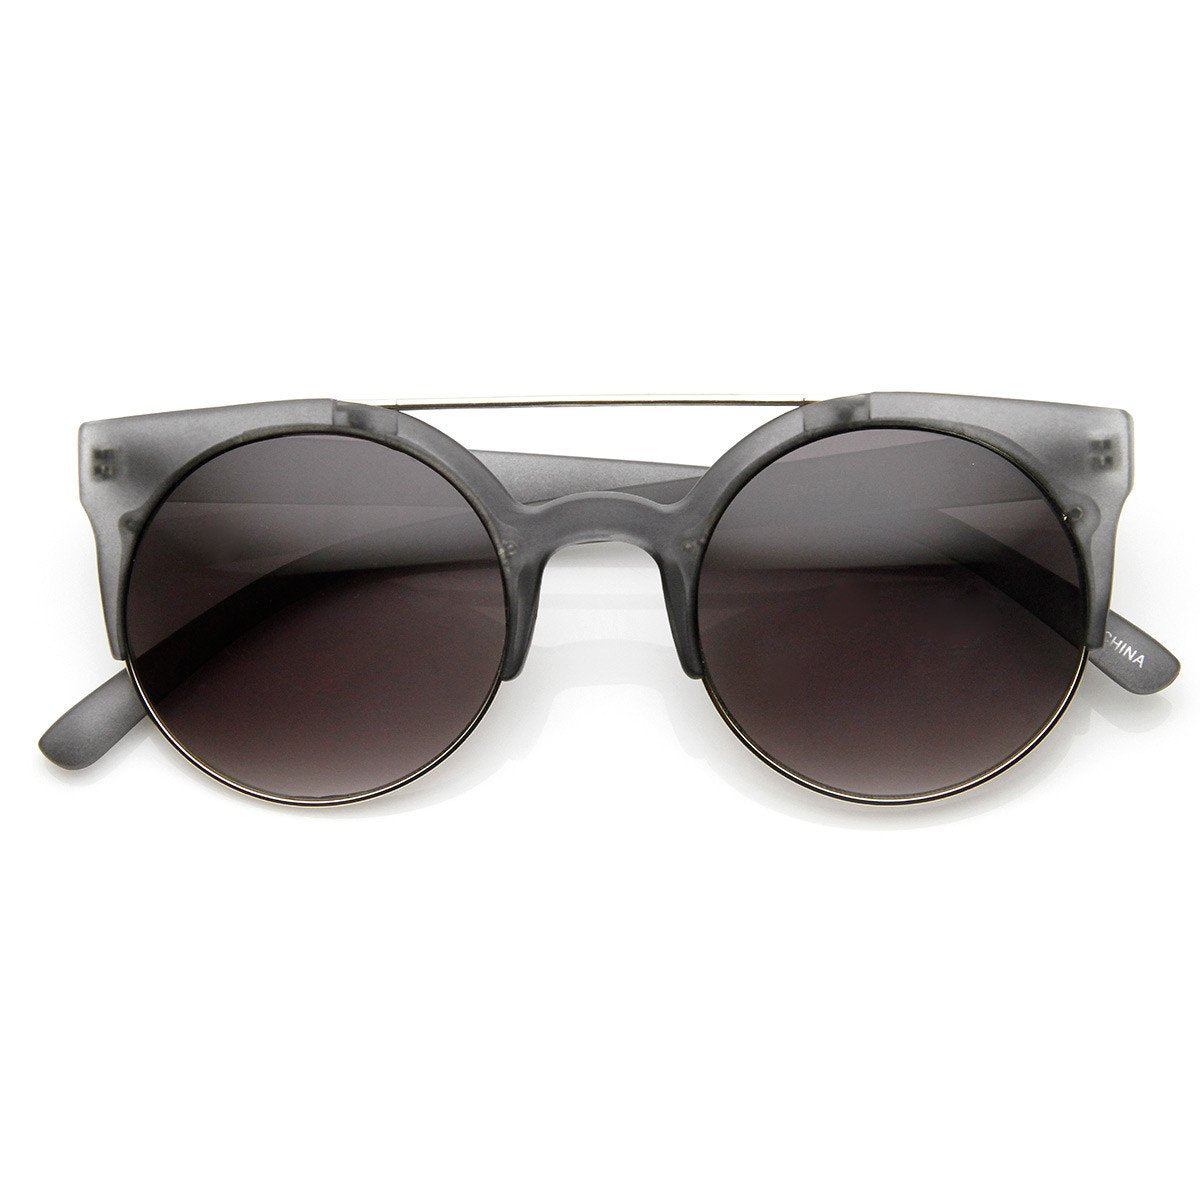 Designer Retro Circle Super Half Frame Flat Bar Sunglasses 8525